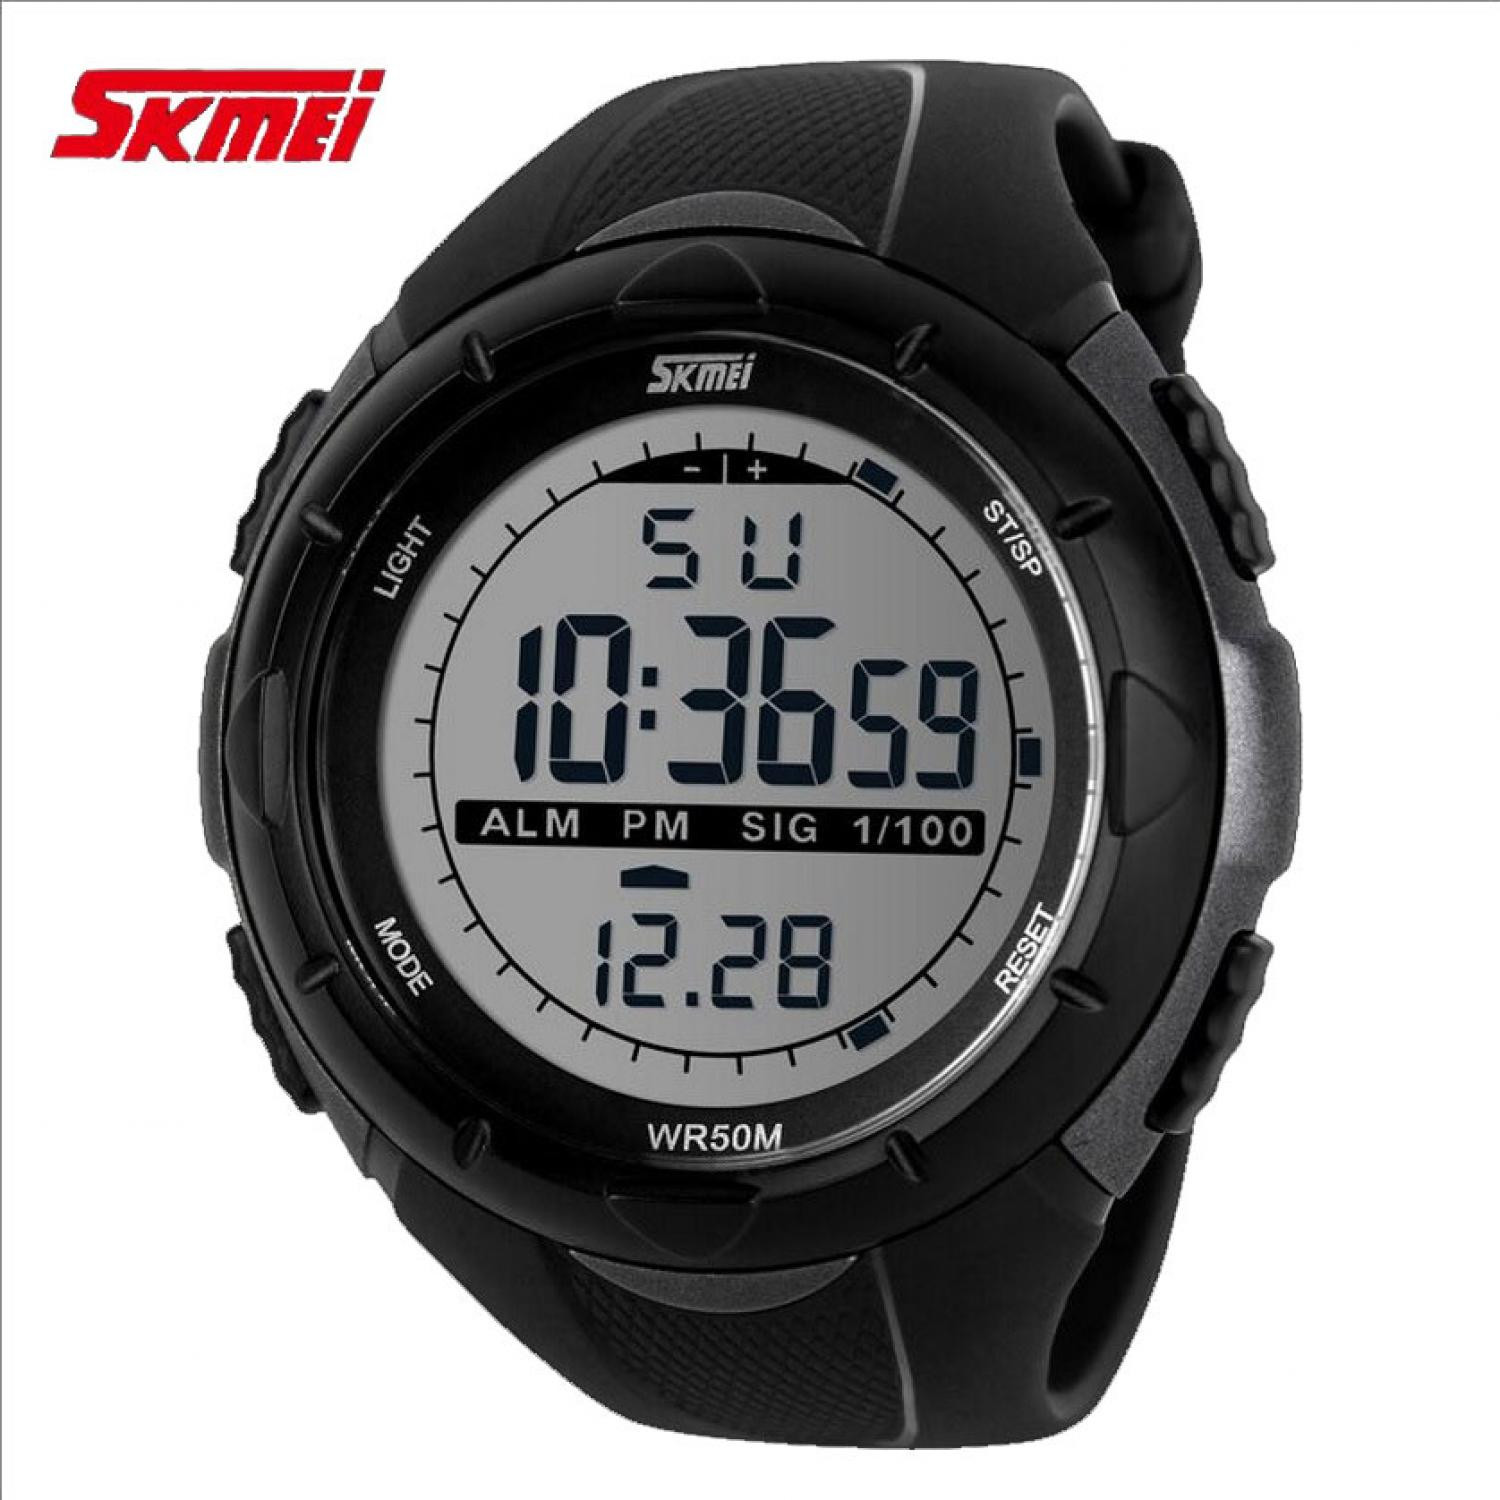 SKMEI S-Shock Sport Watch Water Resistant 50m - DG1025